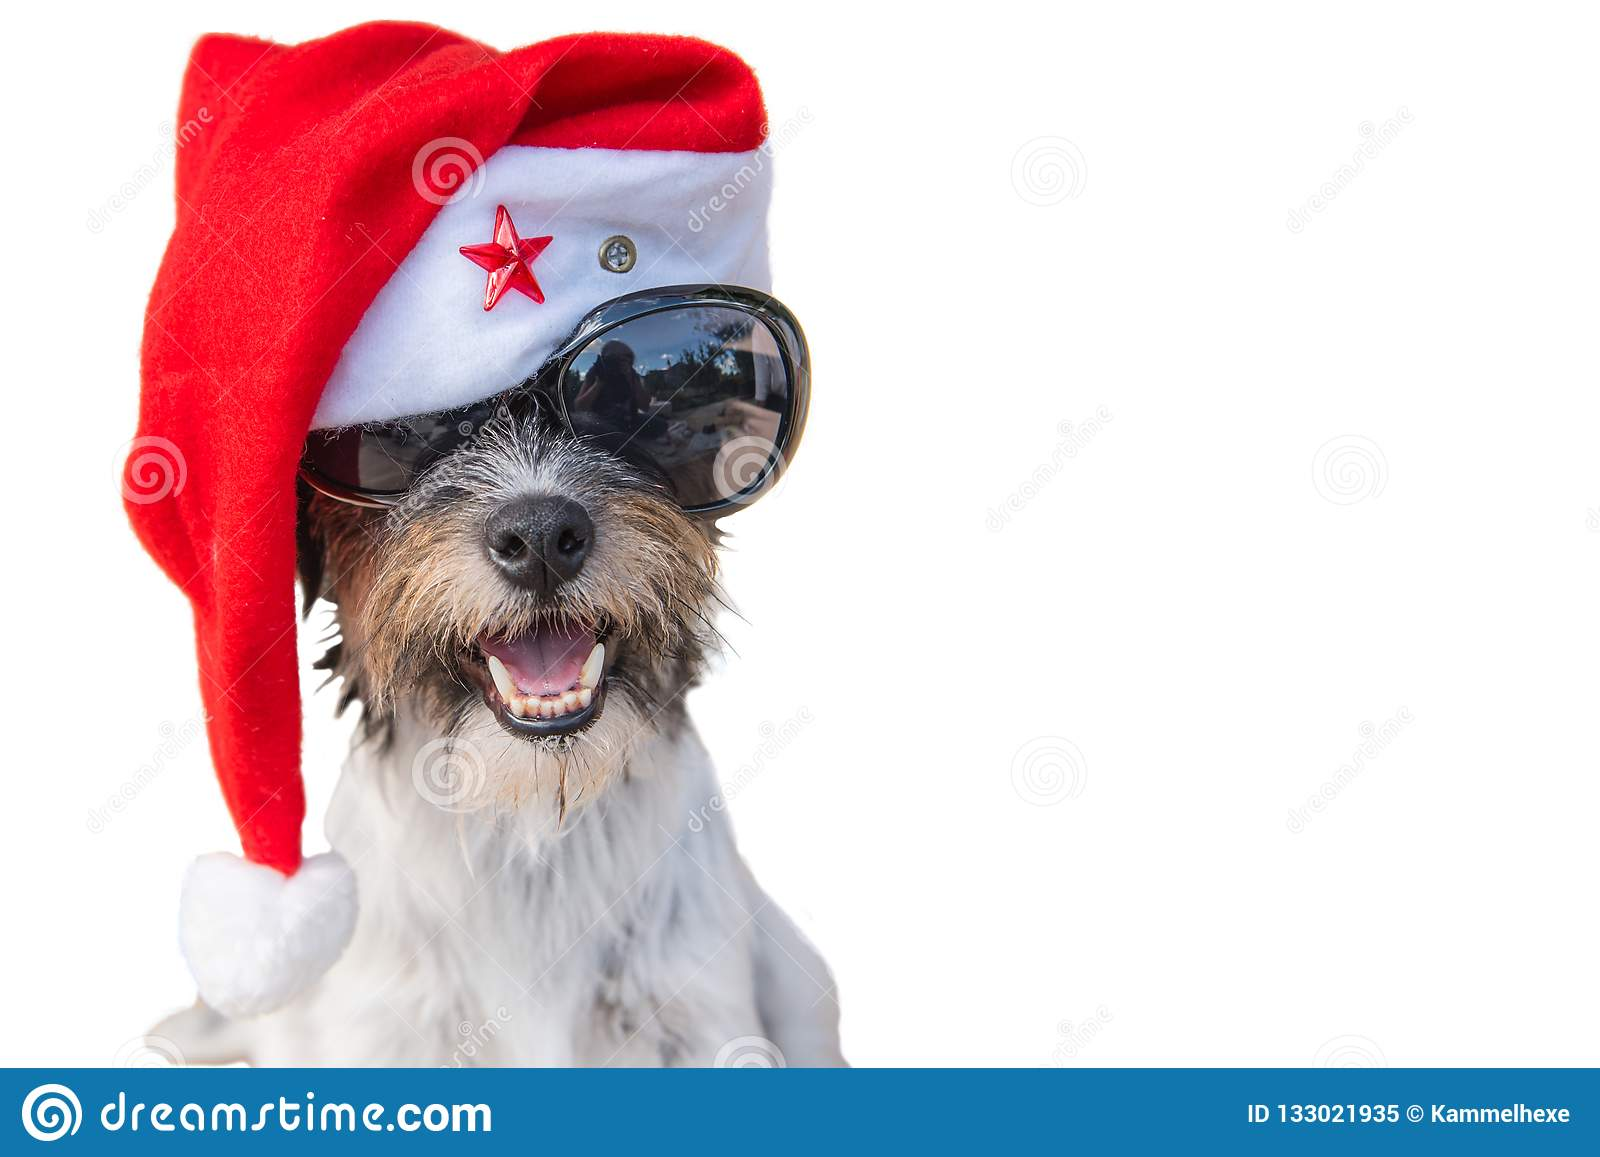 Unusual and curious smiling santa claus doggy portrait with glasses